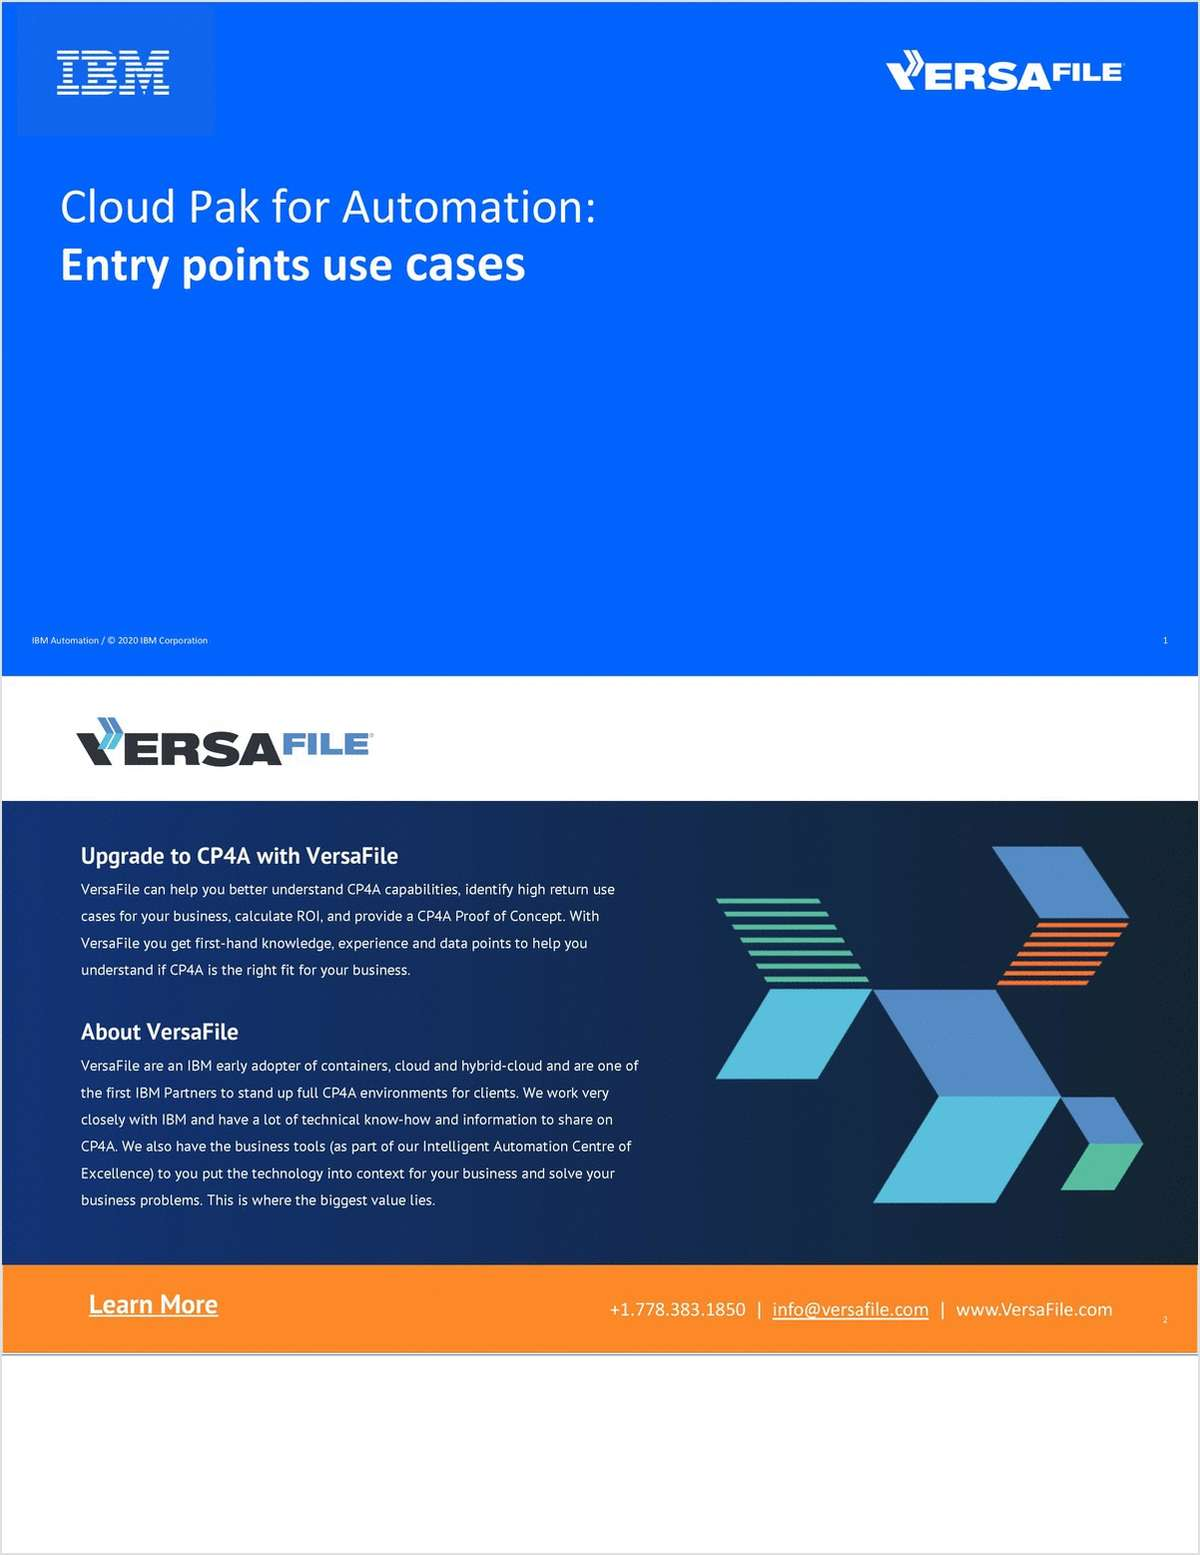 Cloud Pak for Automation: Entry points use cases